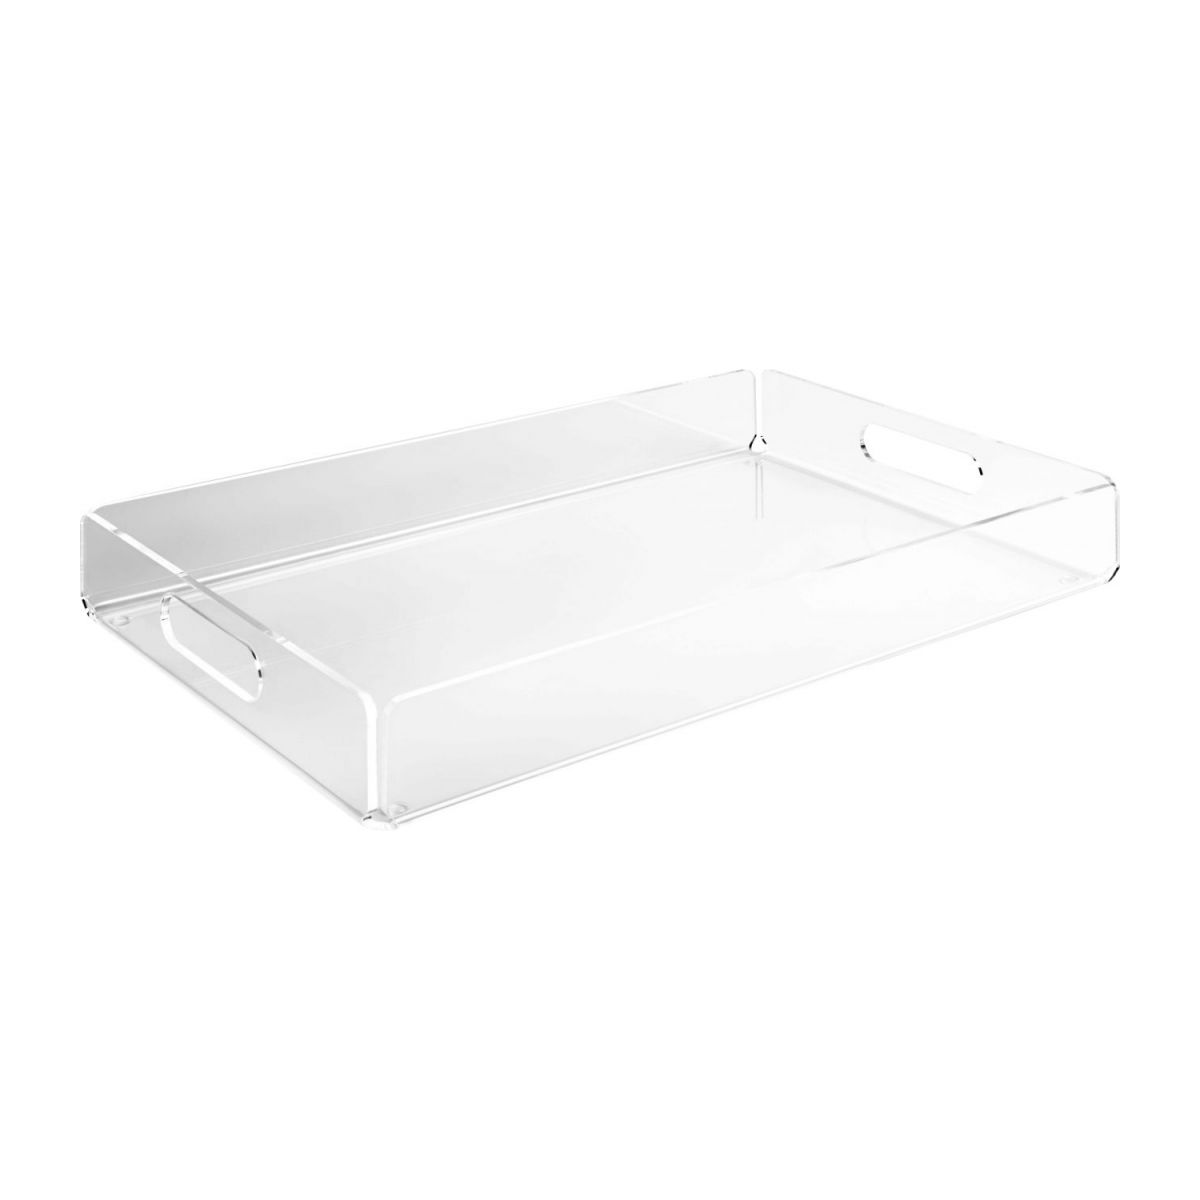 Transparent acrylic tray n°1